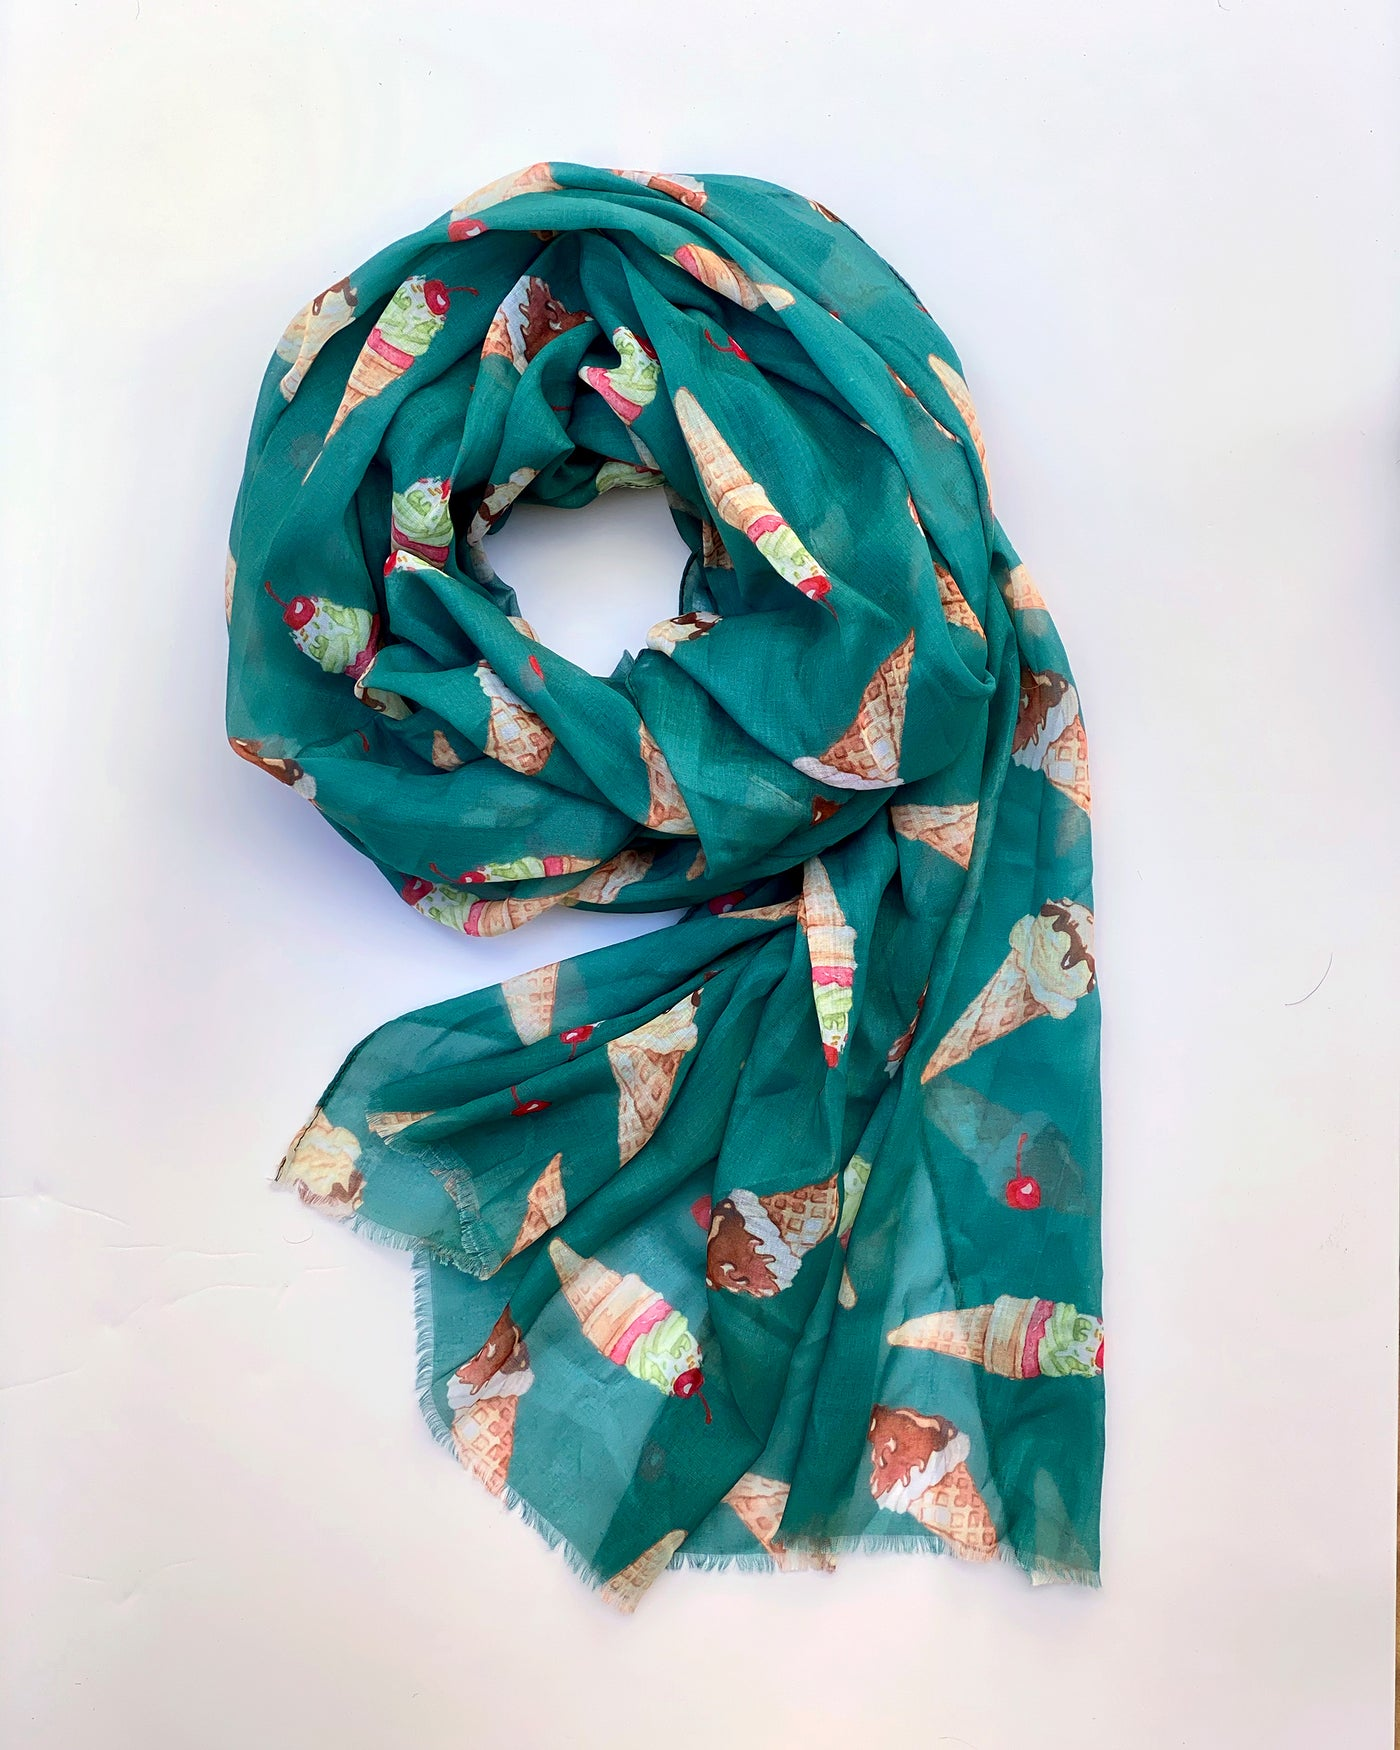 Teal Ice Cream Scarf